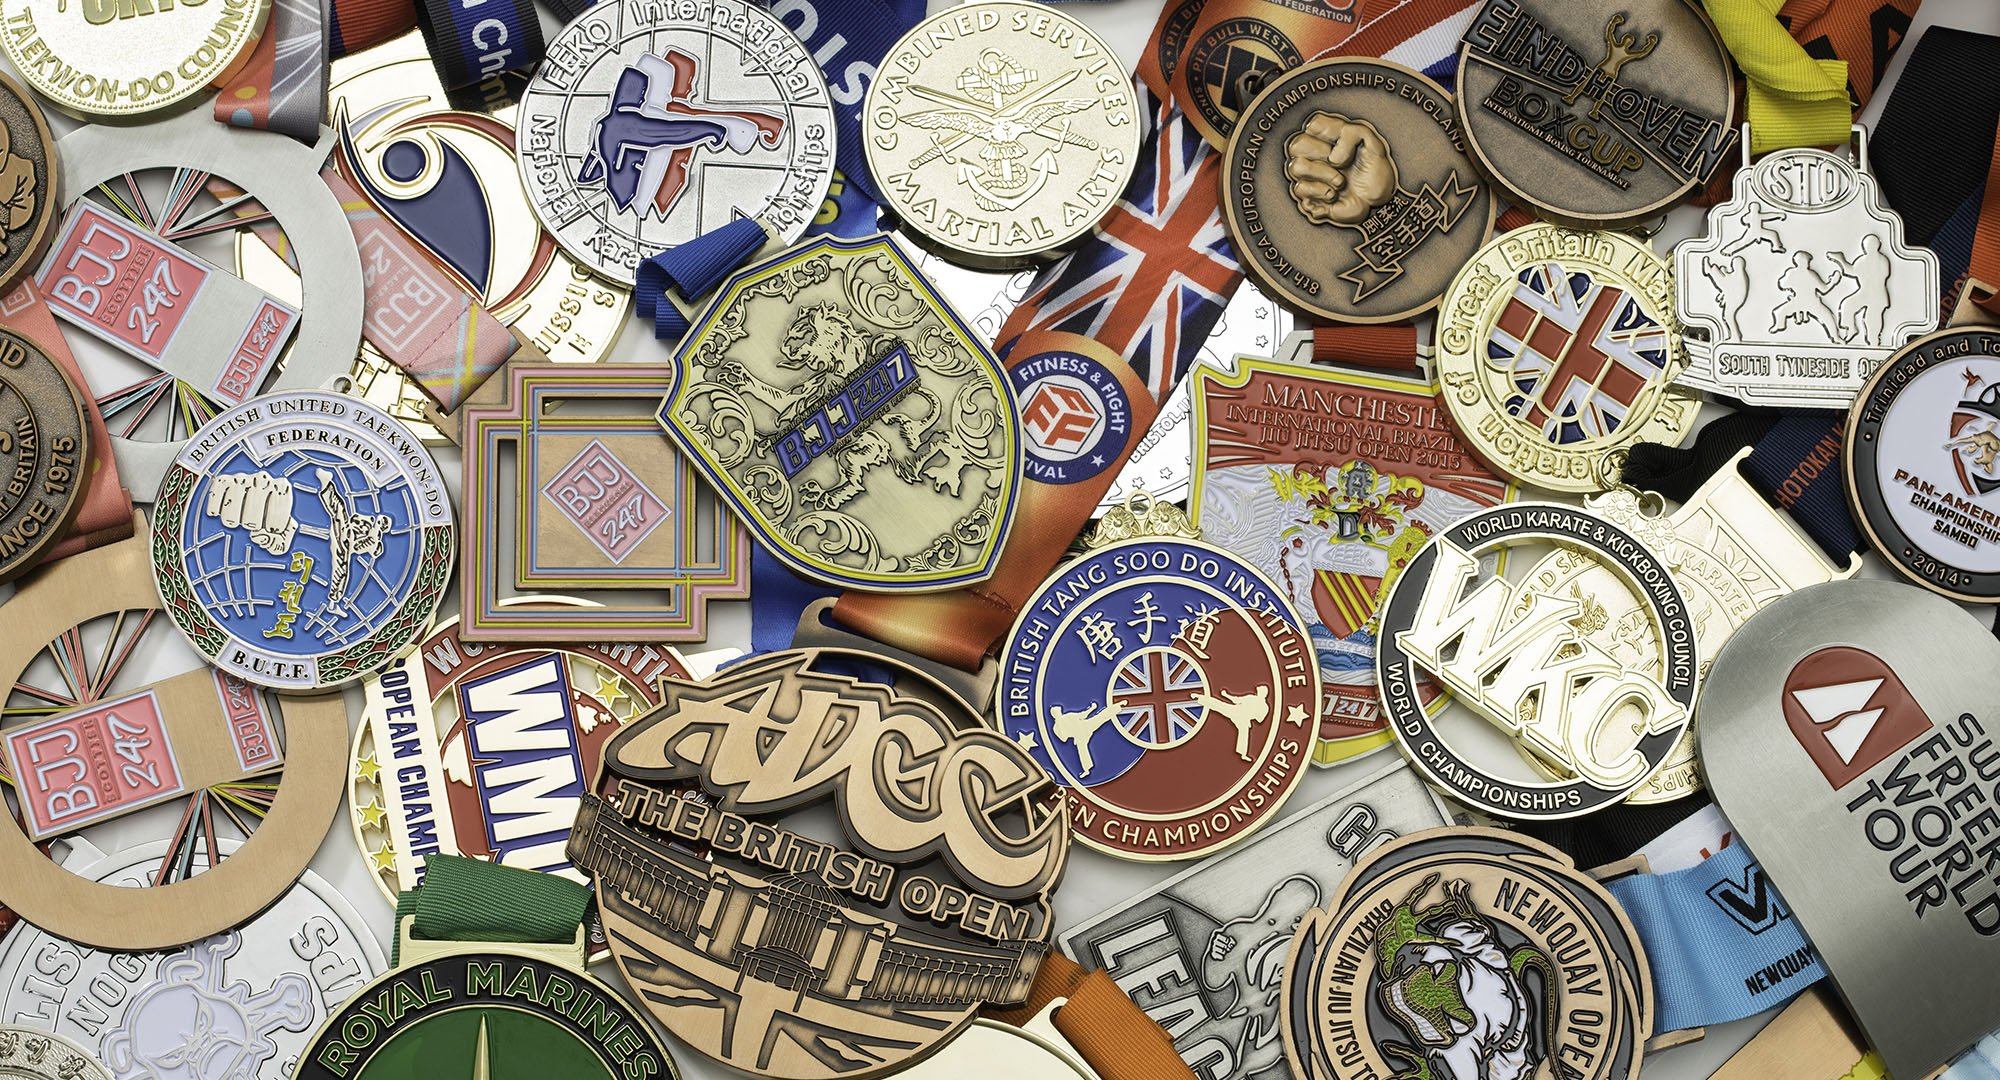 "<h3>Bespoke Medals</h3><h2>DISTINCTIVELY DIFFERENT MEDAL MAKERS.</h2><a href=""/custom-made-medals-die-cast"" class=""btn"">Shop Now</a><br><br><br><br>"